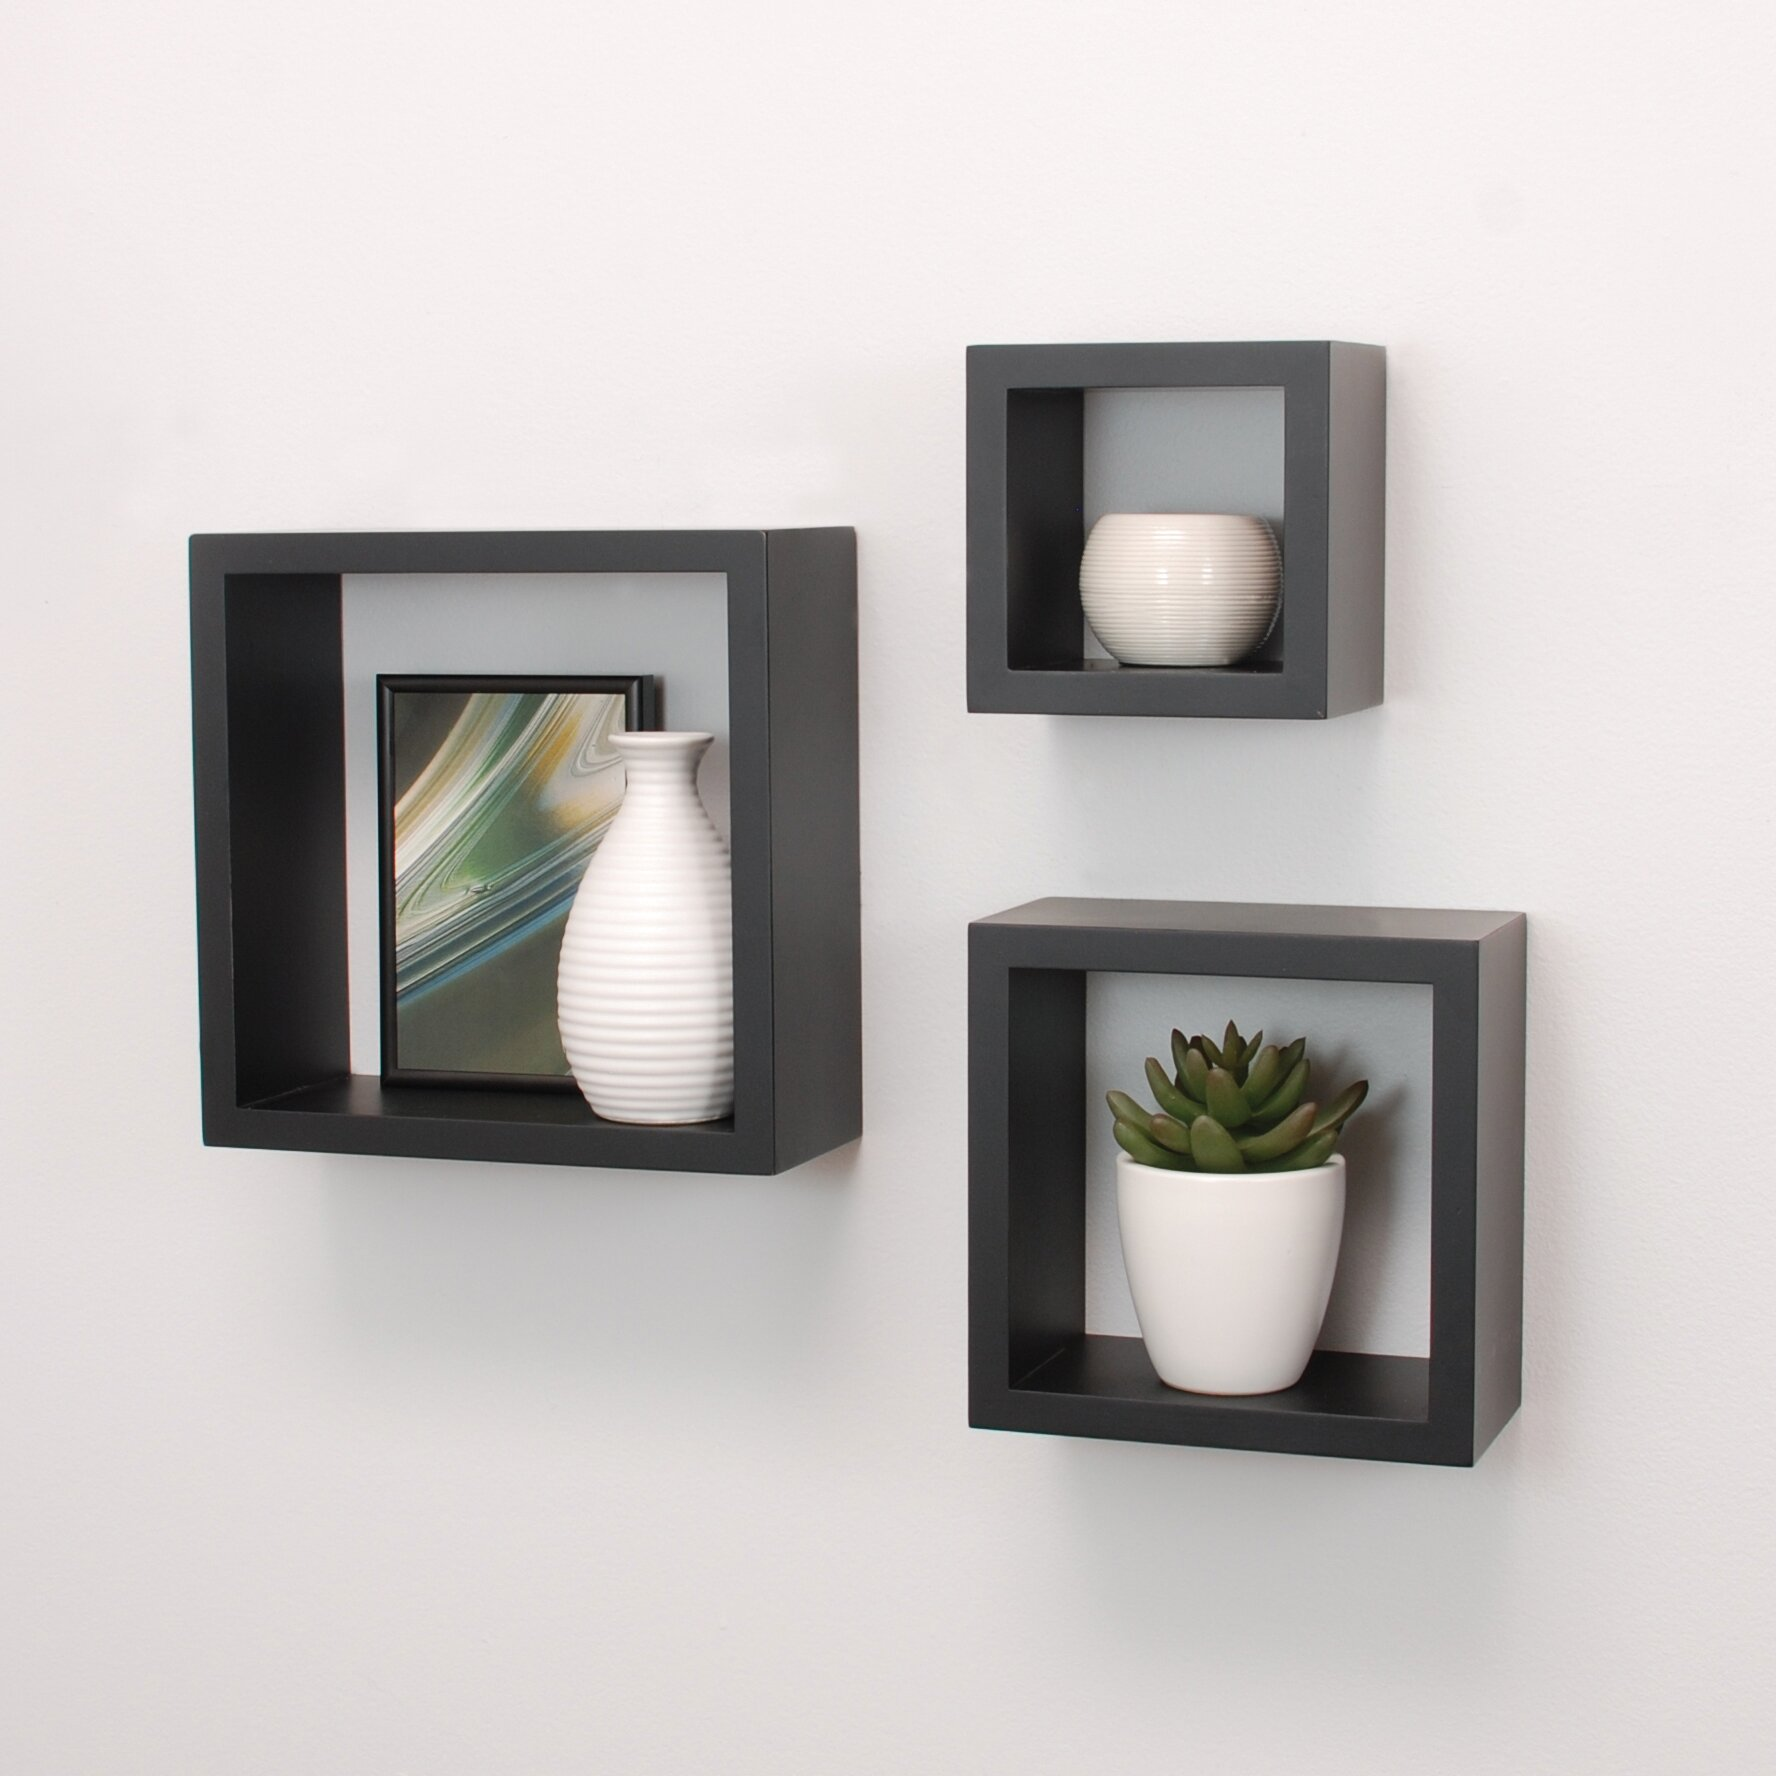 Nexxt design cubbi 3 piece wall shelf set reviews wayfair - Etagere murale pour cd ...